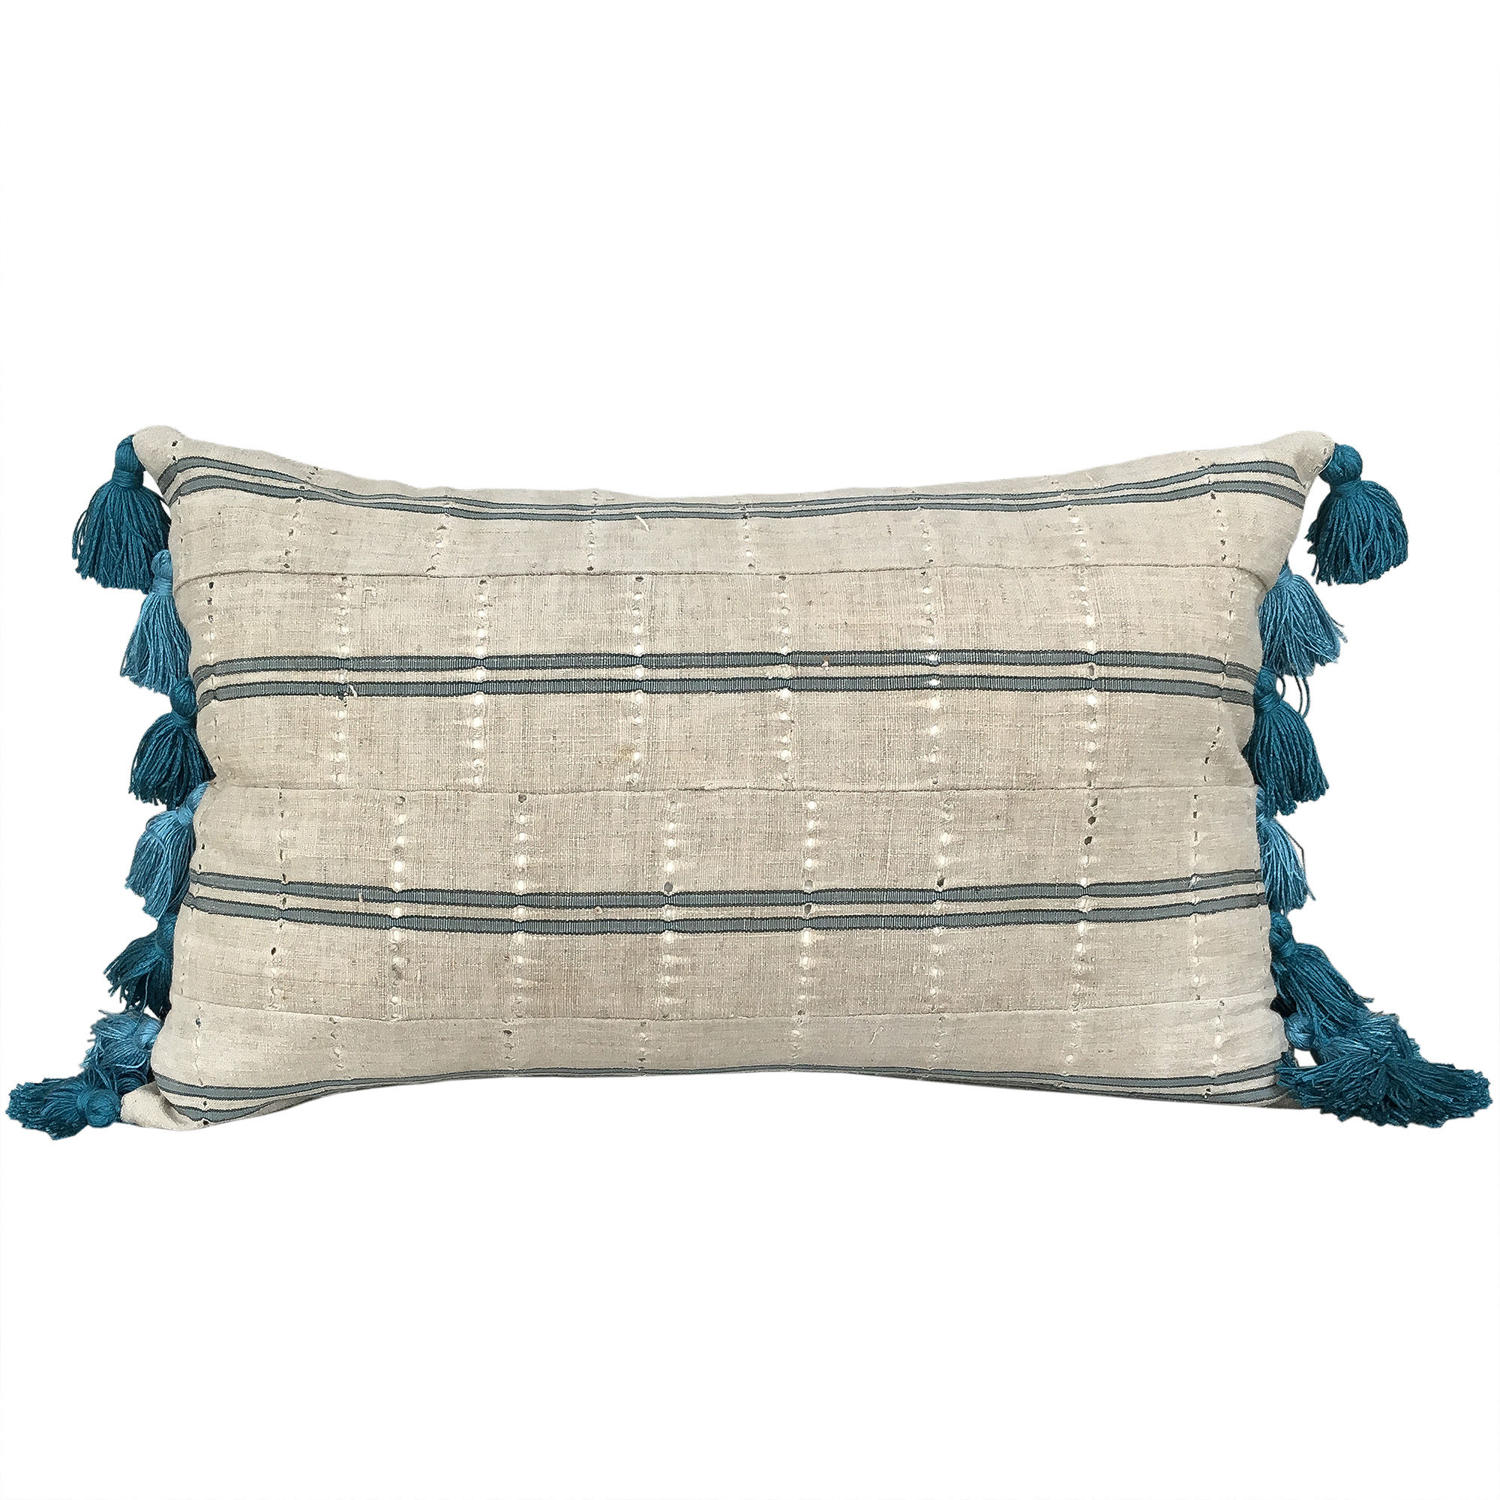 Yoruba Cushions with Teal Tassels